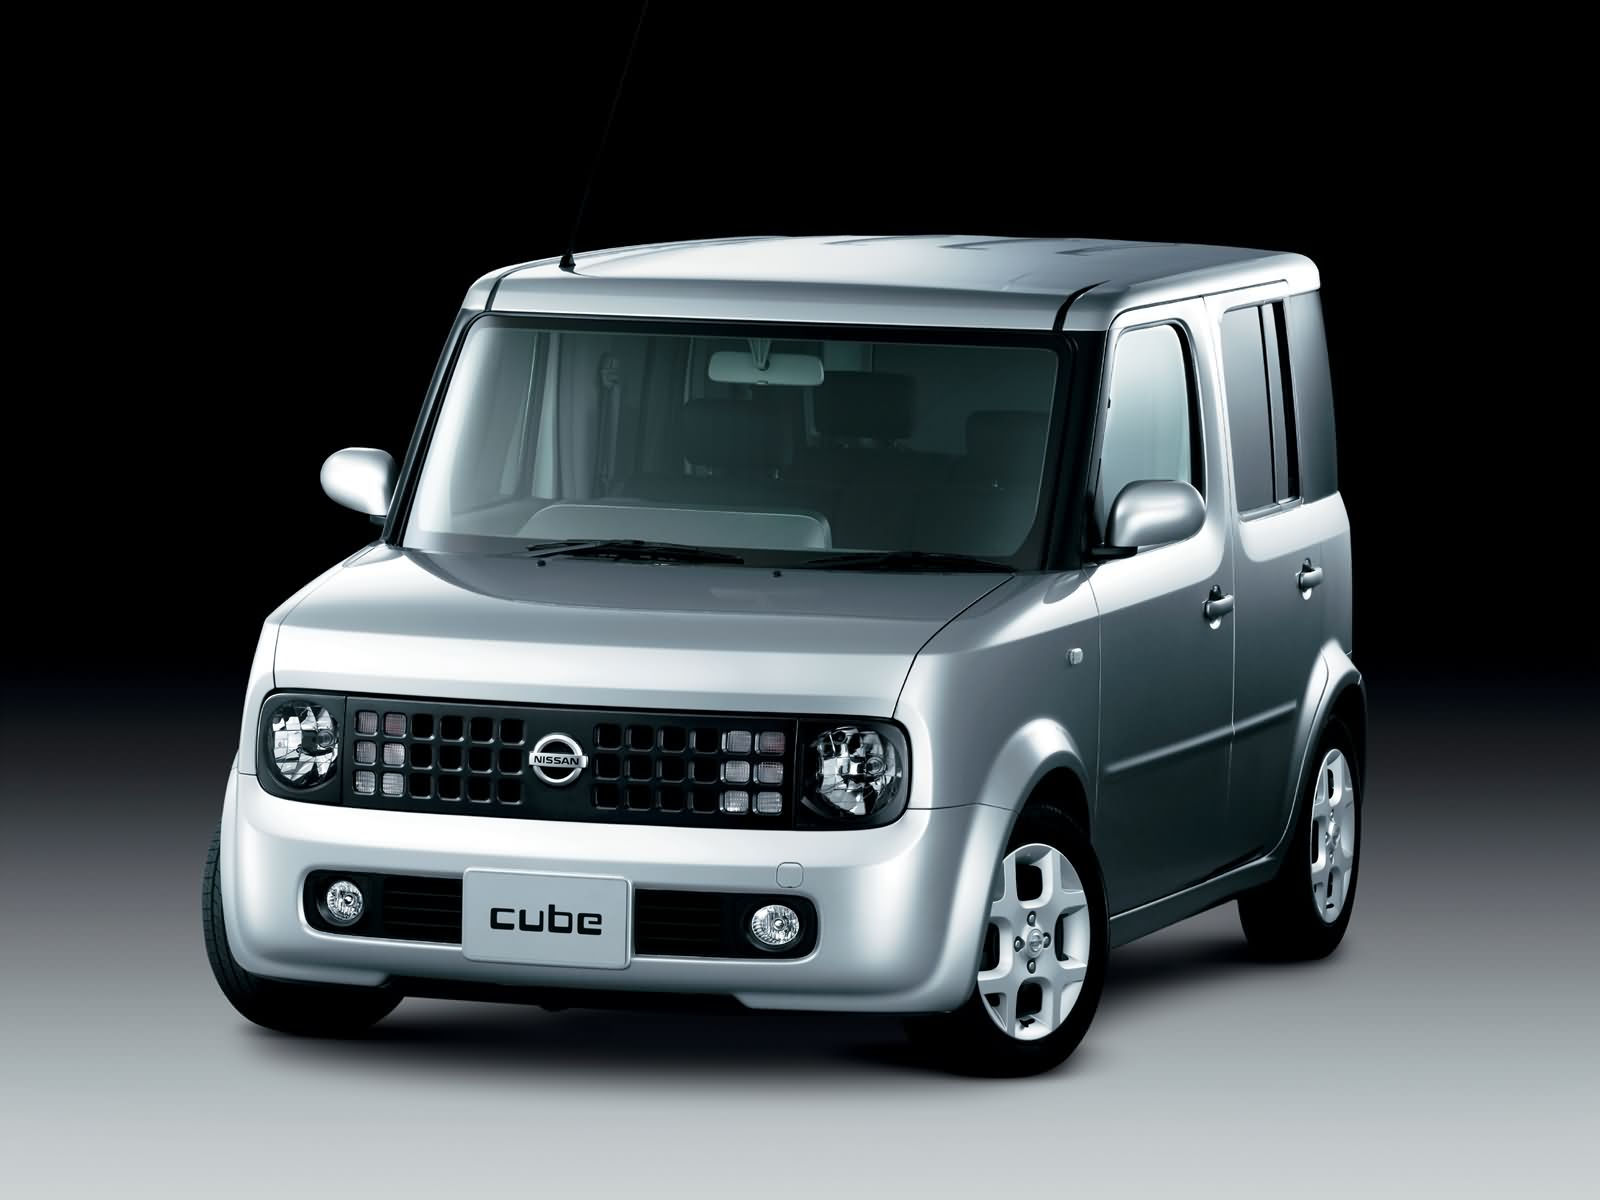 Nissan Cube picture 6682 Nissan photo gallery CarsBasecom 1600x1200